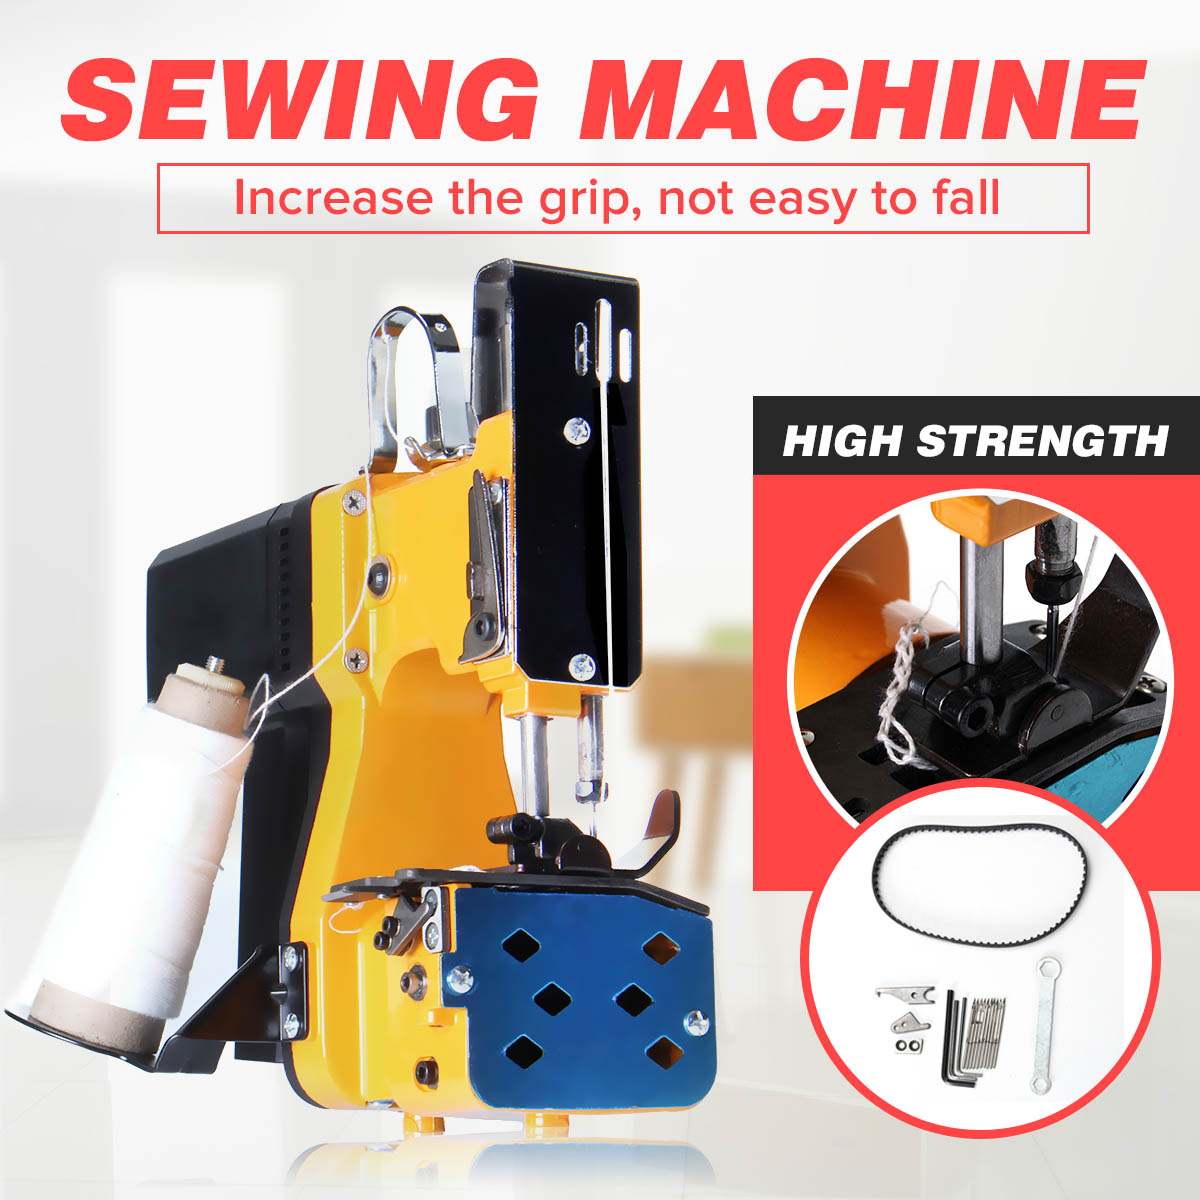 220V Mini Electric Sewing Machine Kit Portable Bag Closer Stitching Sealing Machines for Industrial Home Textile with Plug